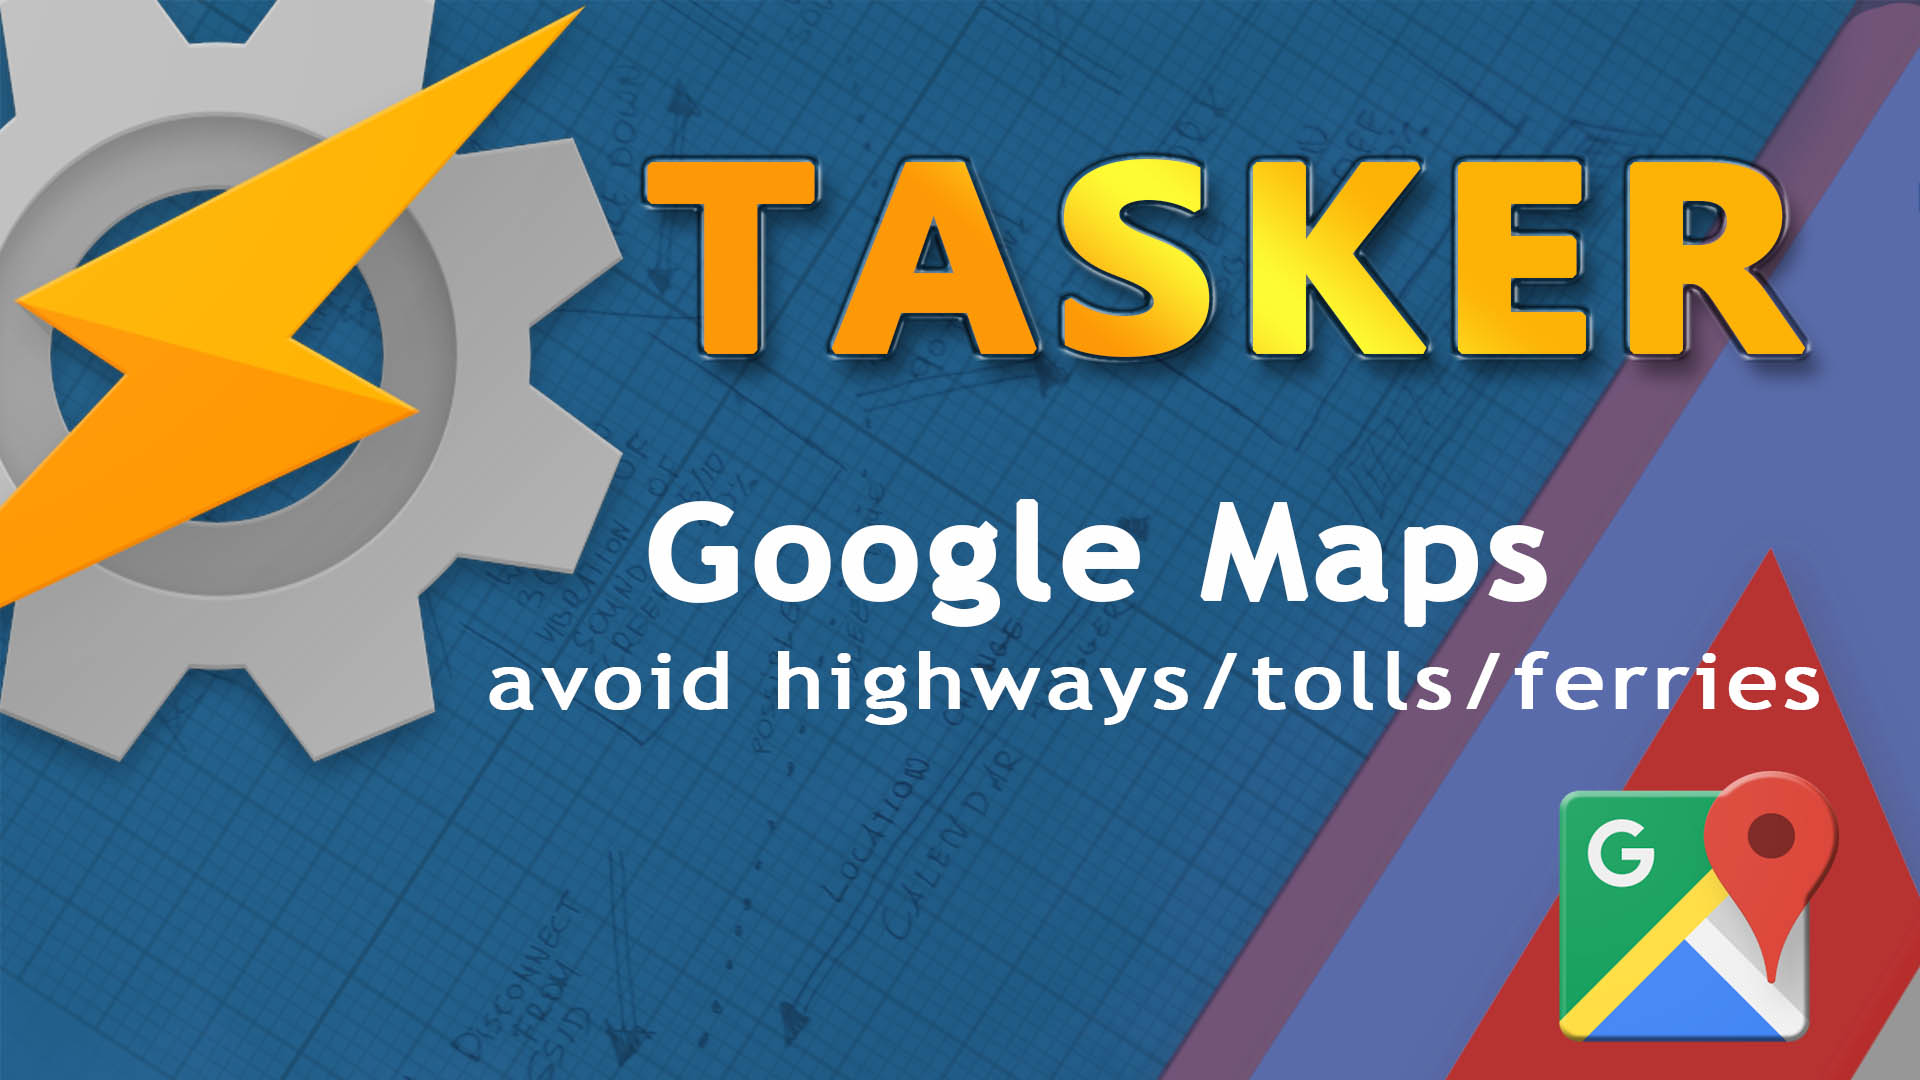 Avoid highways with Tasker